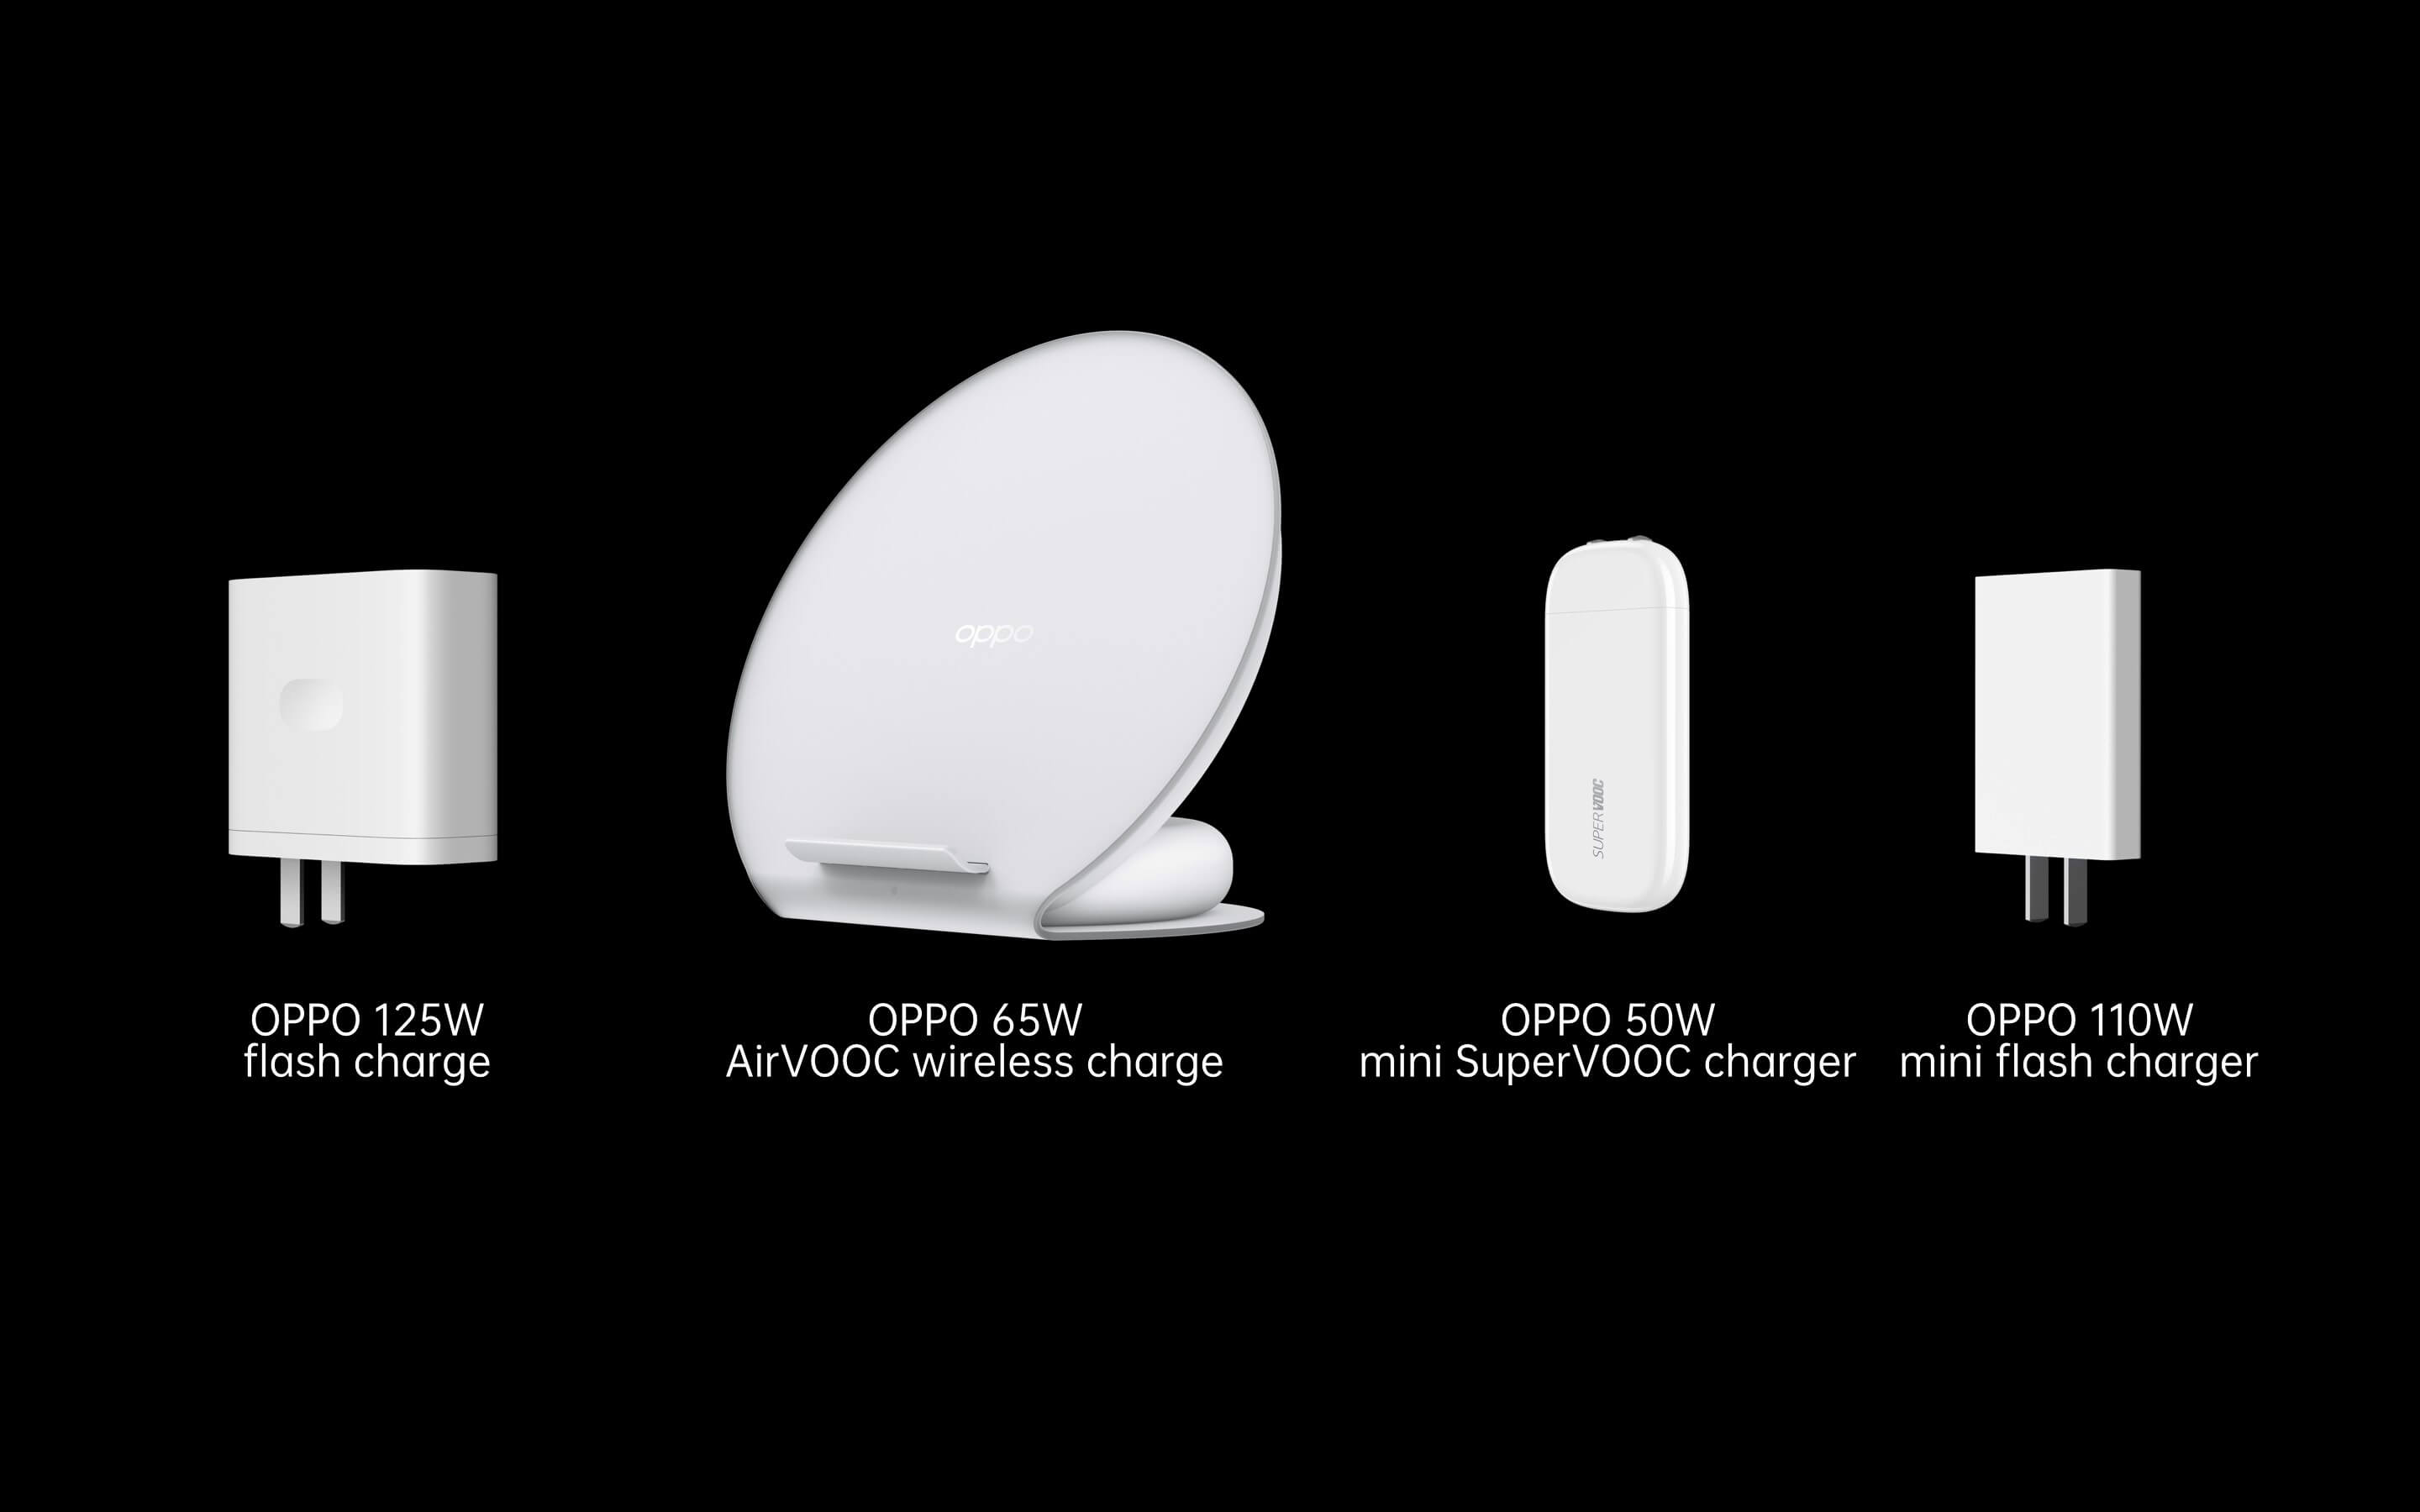 Oppo Launched Super Fast 125W Wired and 65W Wireless Chargers